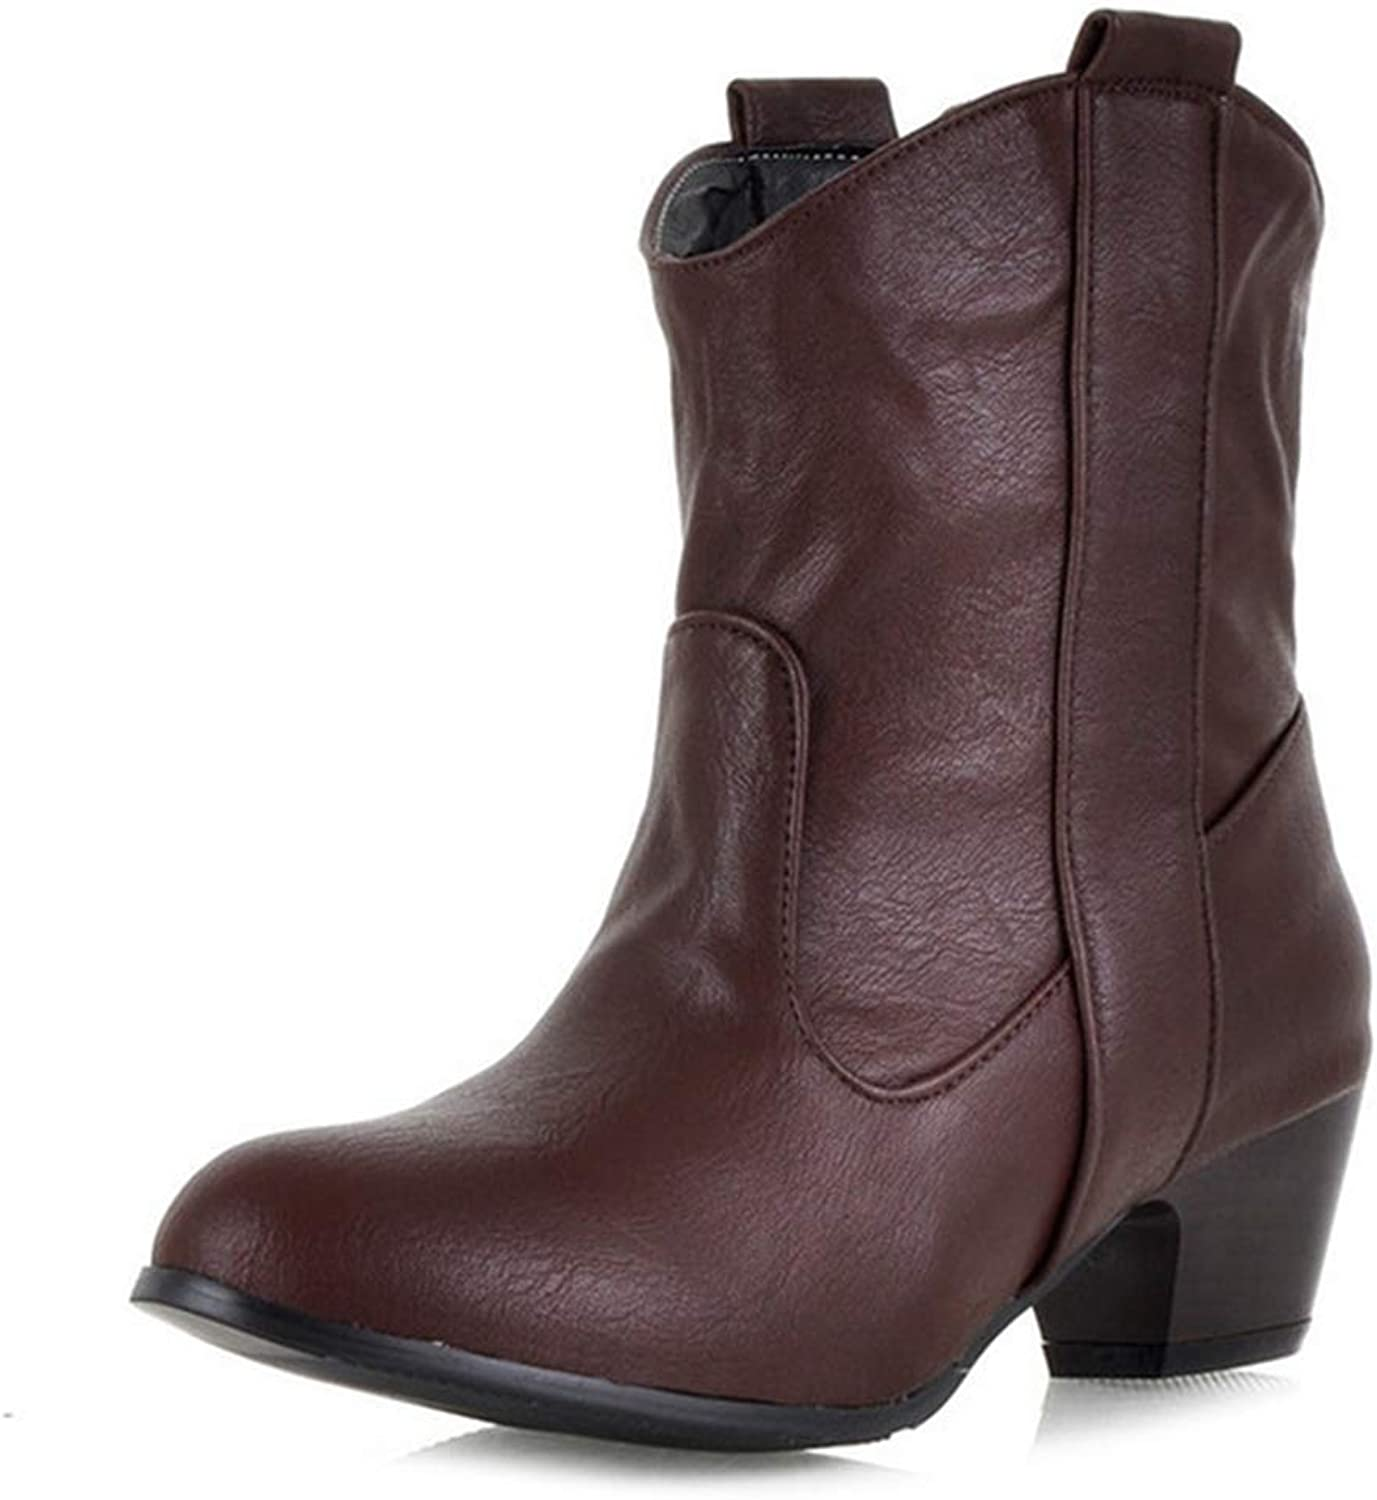 Womens Cowboy Western Ankle Boots Round Toe Slip-On Chelsea Booties Stacked Mid Heel Martin Short Boot